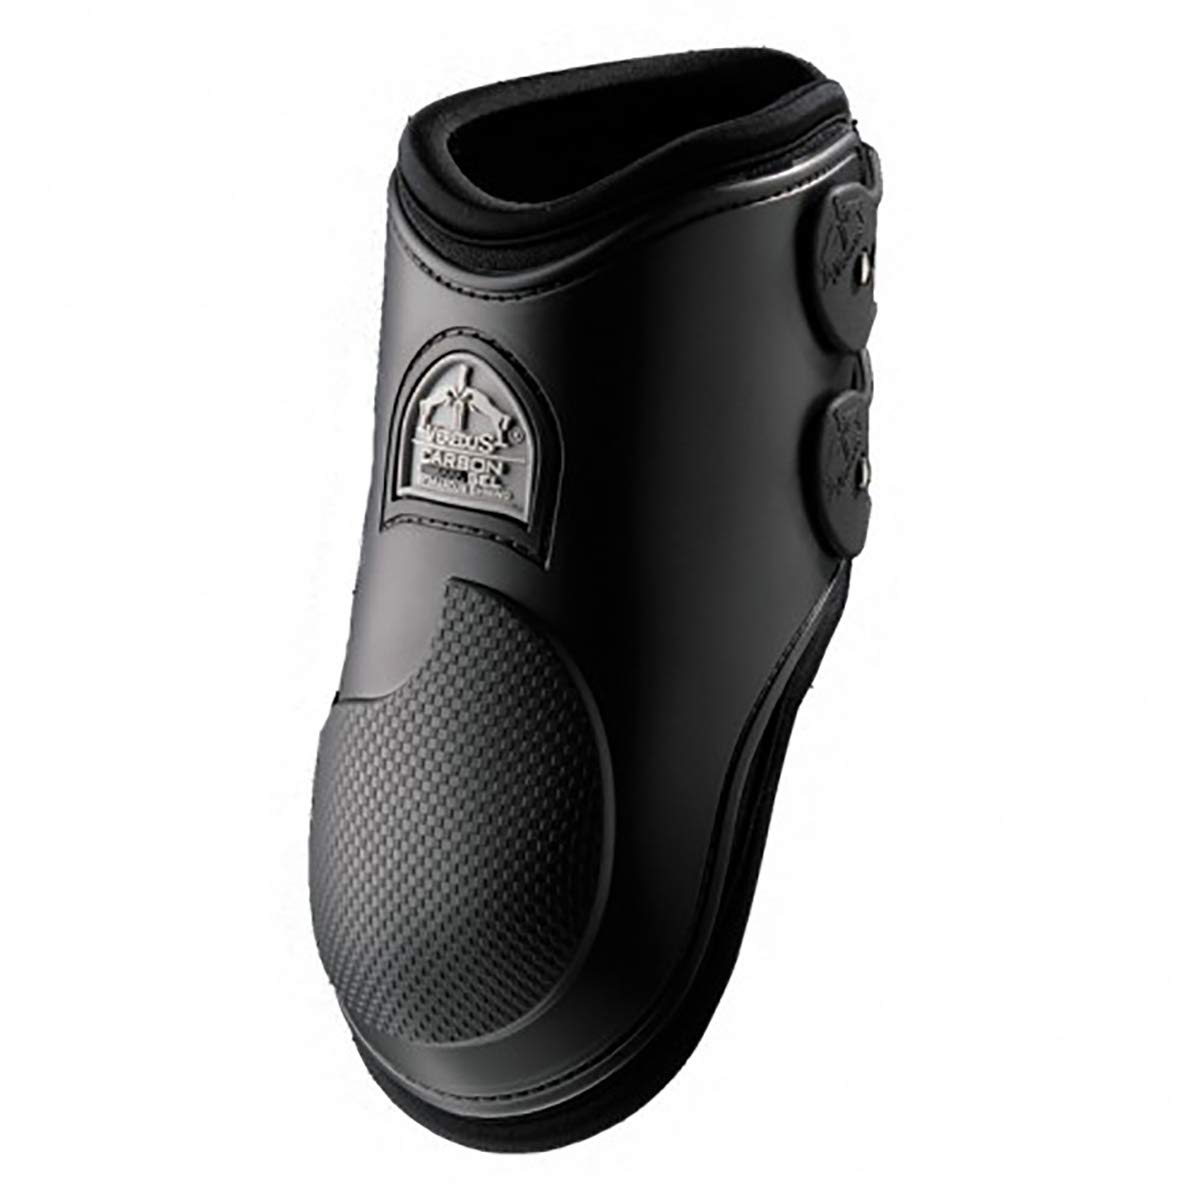 Veredus - Fetlock Carbon Gel Vento Rear - Horse Boots - Made in Italy - Black by Veredus (Image #1)